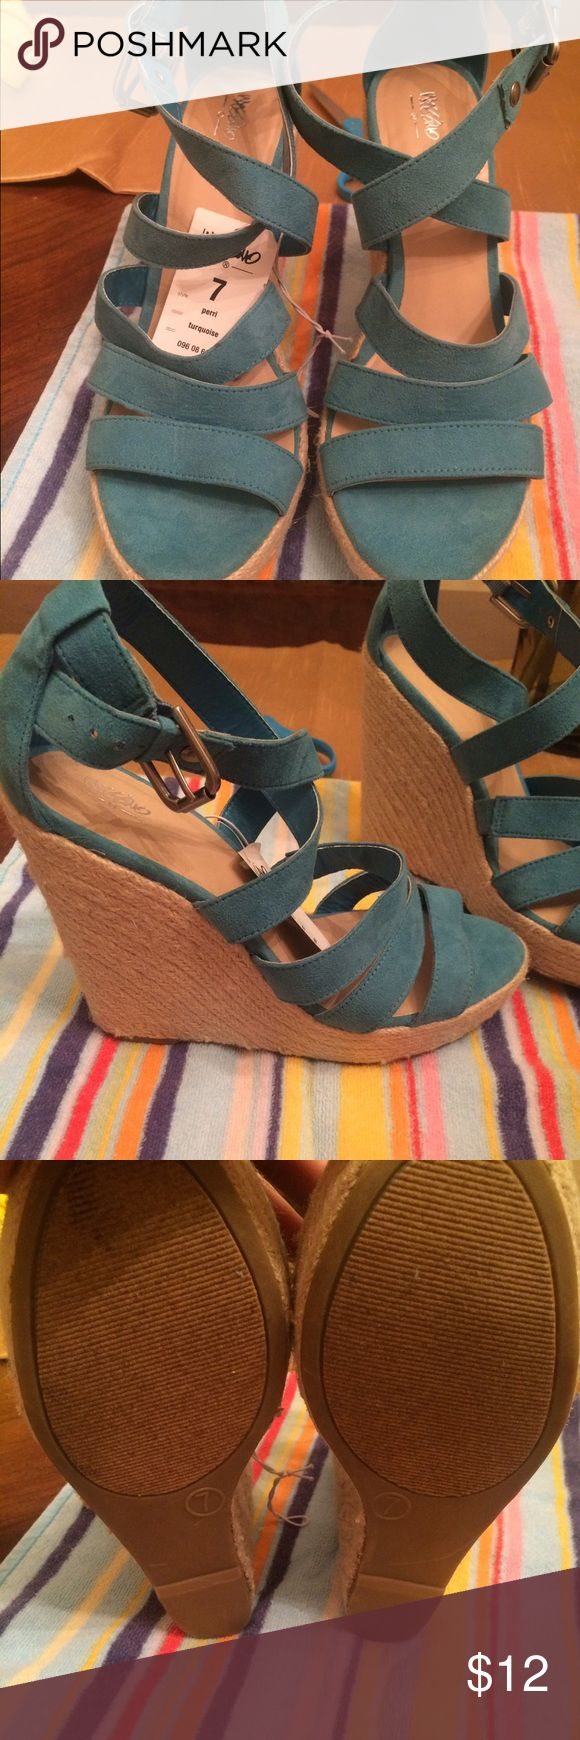 Mossimo teal wedge perfect for summer NWT Bought these at target have never worn them only tried them on but they are too tall for me lol.  They are a SIZE 7 and NWT and teal/turquoise-ish in color Mossimo Supply Co Shoes Wedges